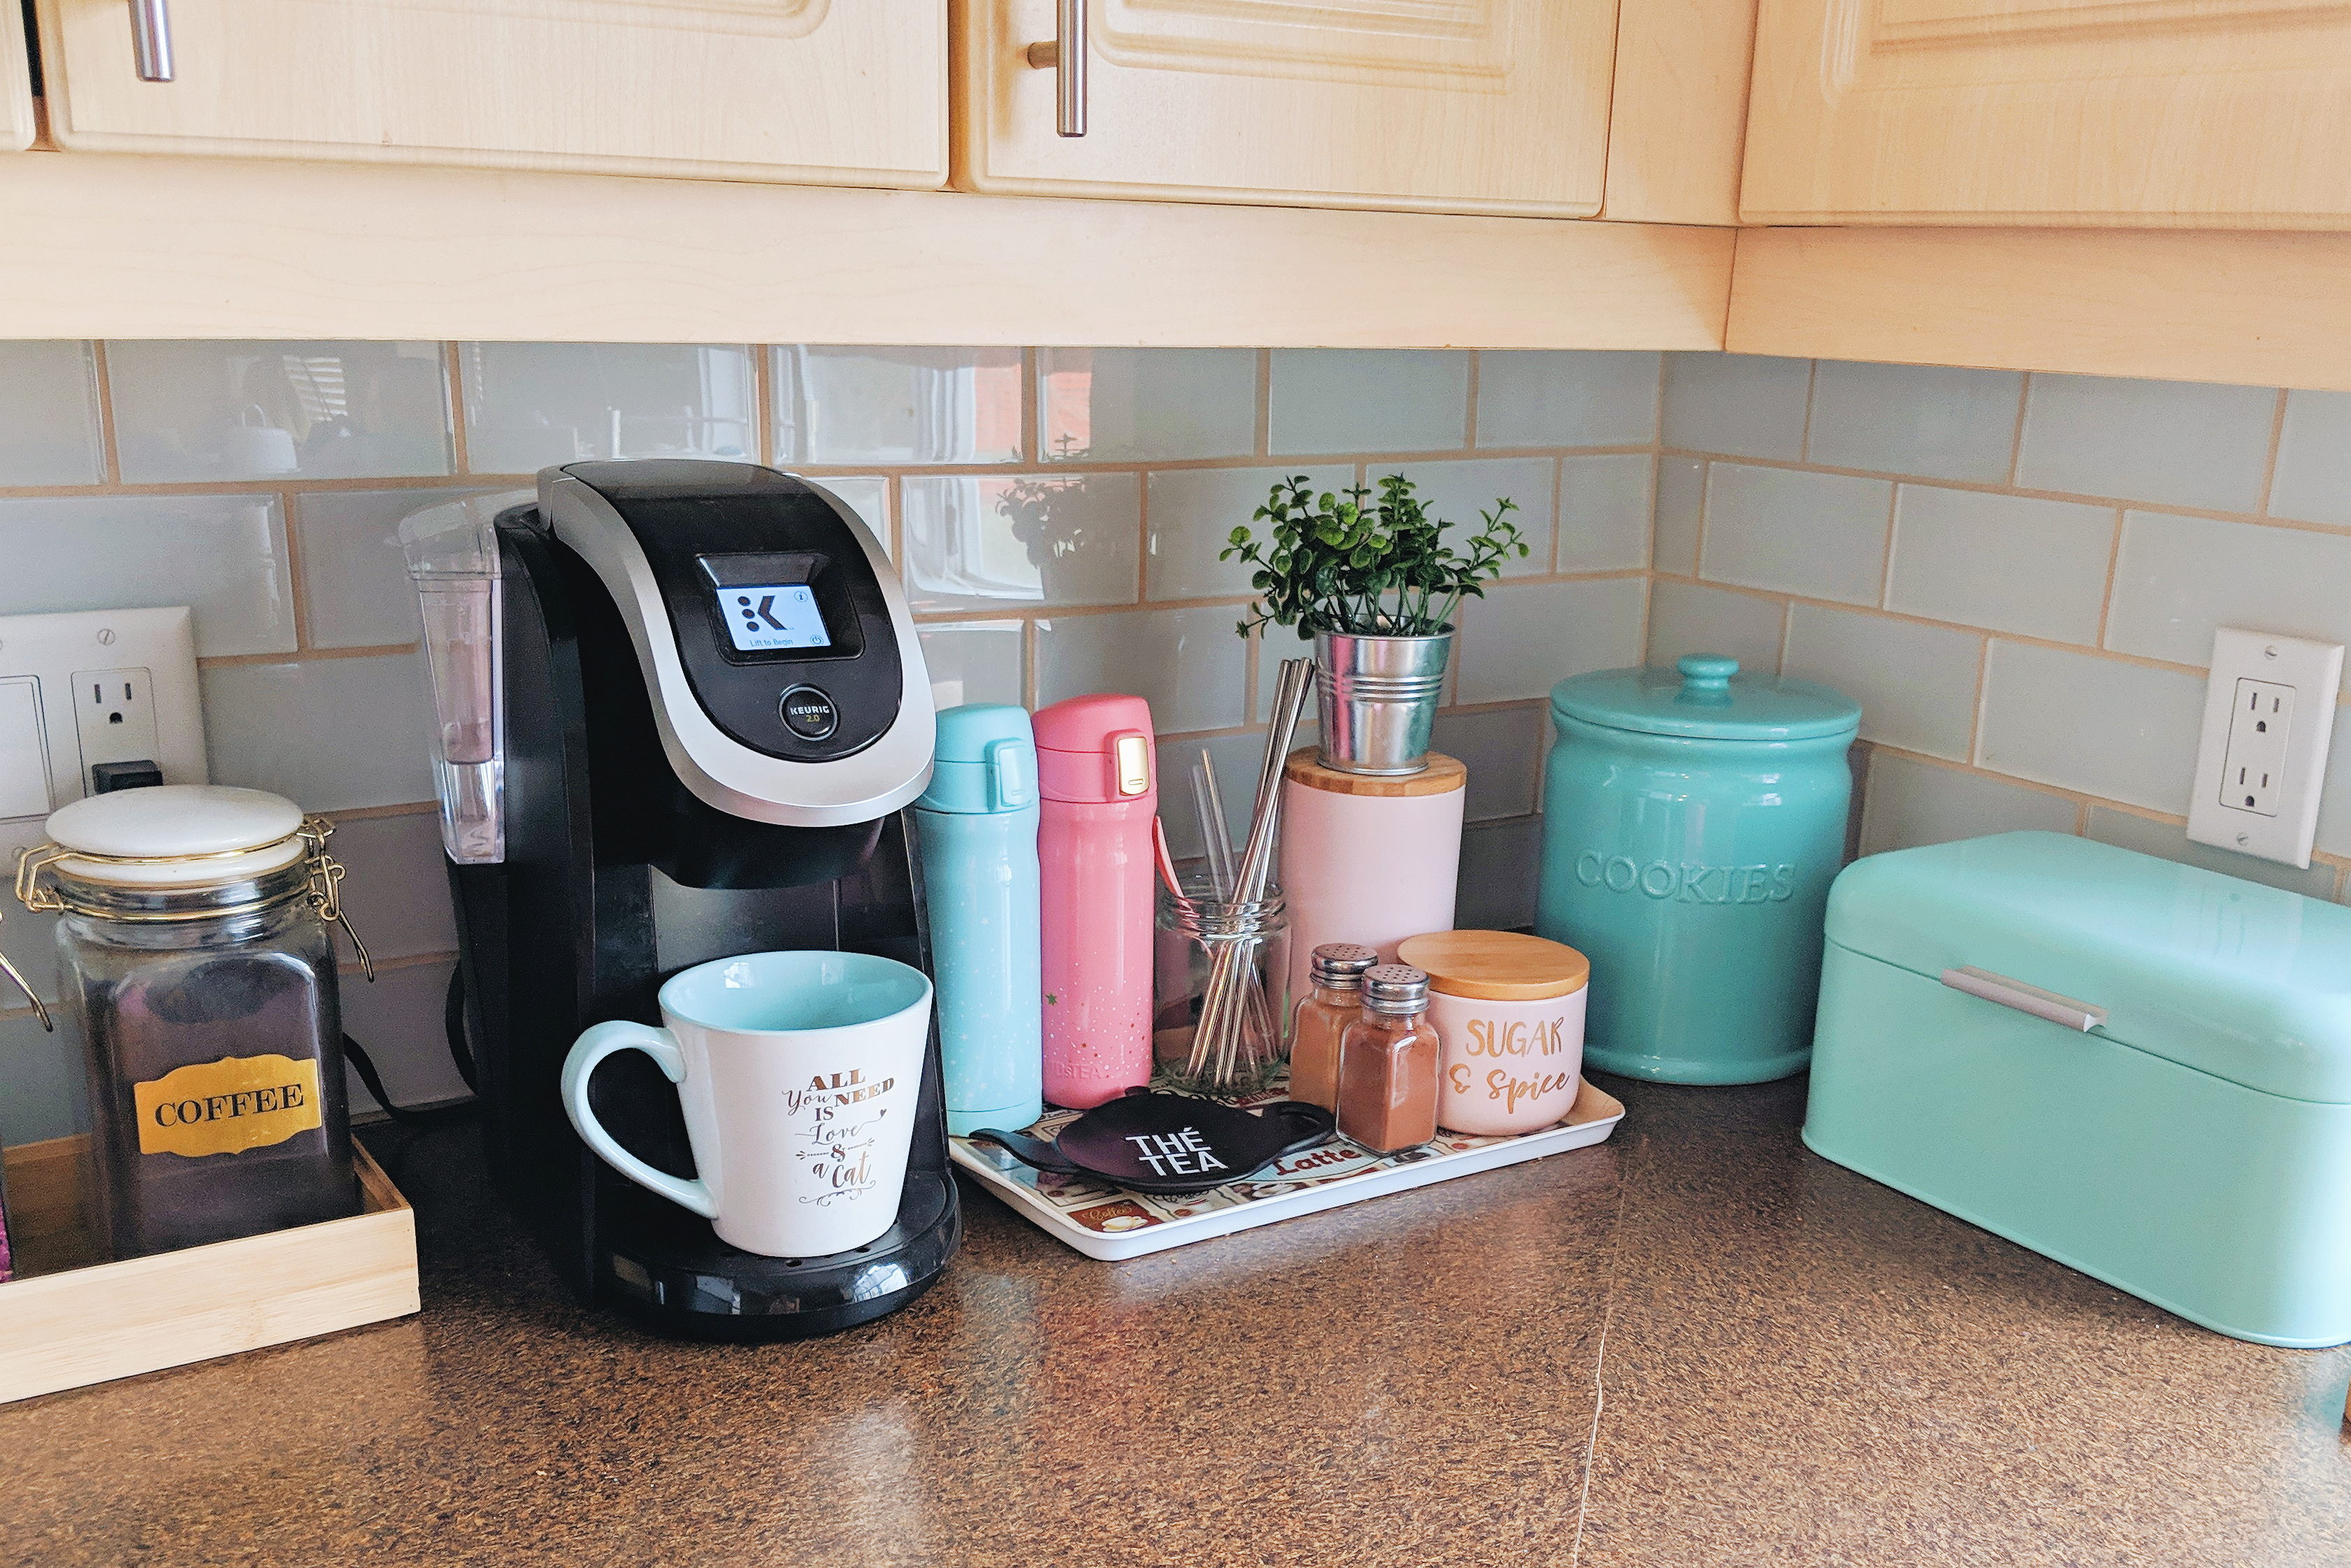 Homemaker's Evening Routine: 4 Easy Tasks That Will Help You Prepare for the Next Day 1